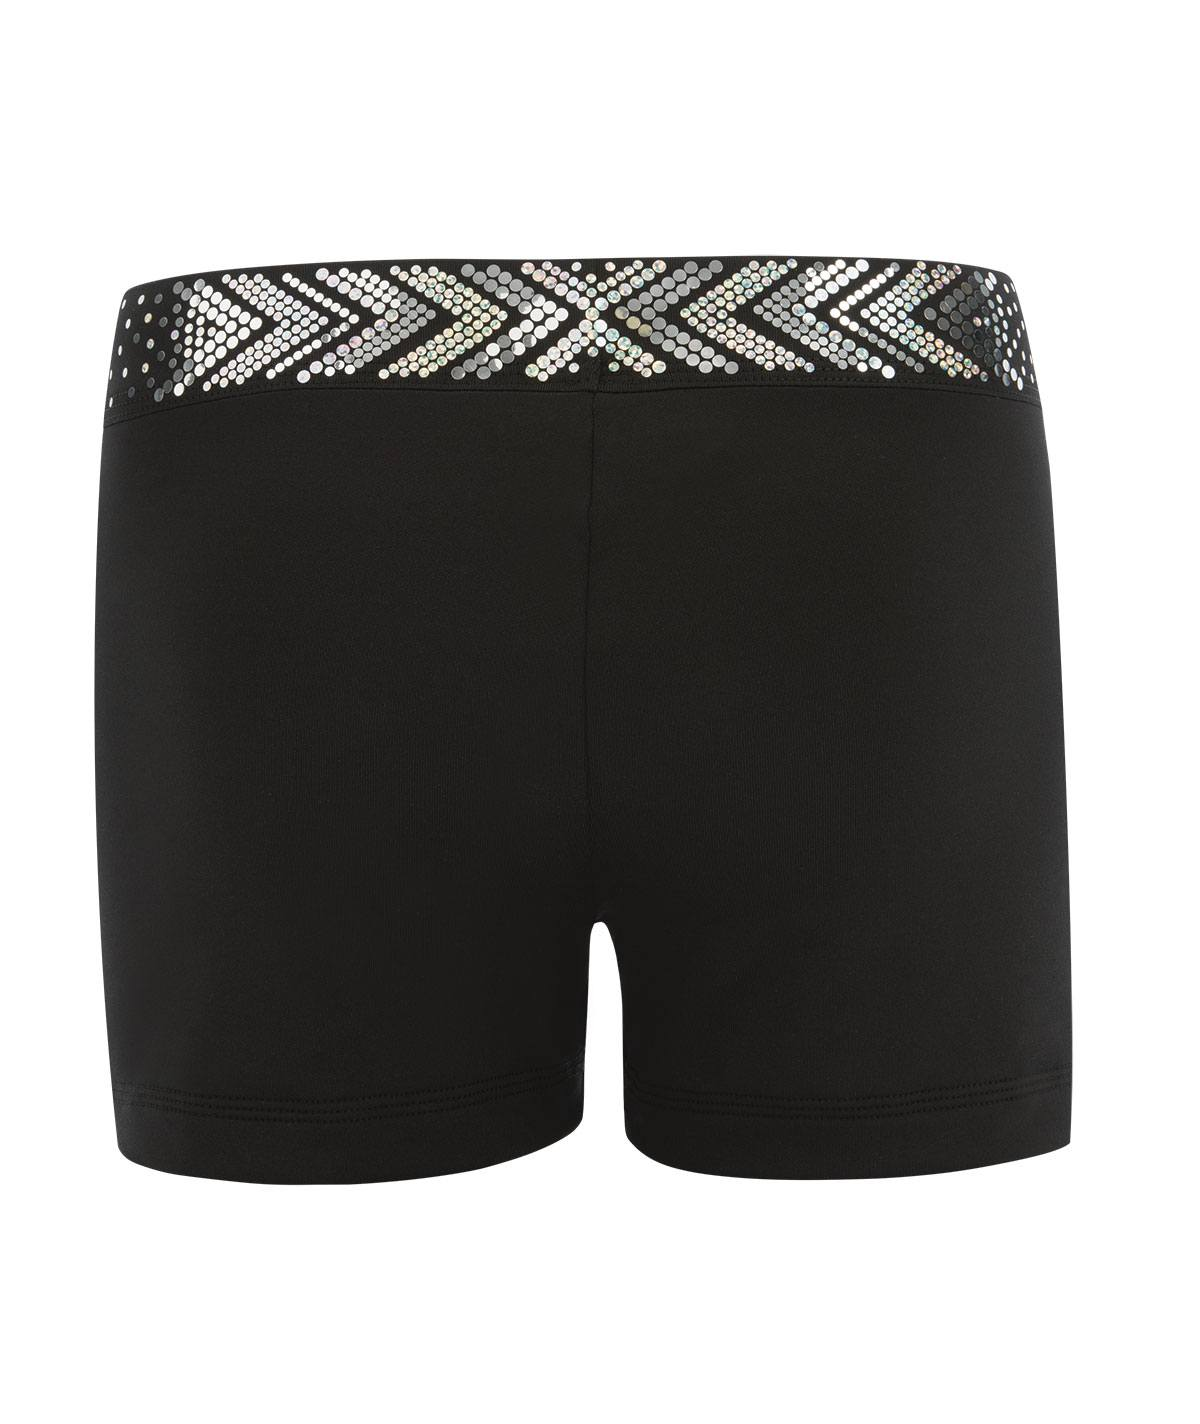 GK All Star Black Cheer Shorts with Silver Spanglez Waistband